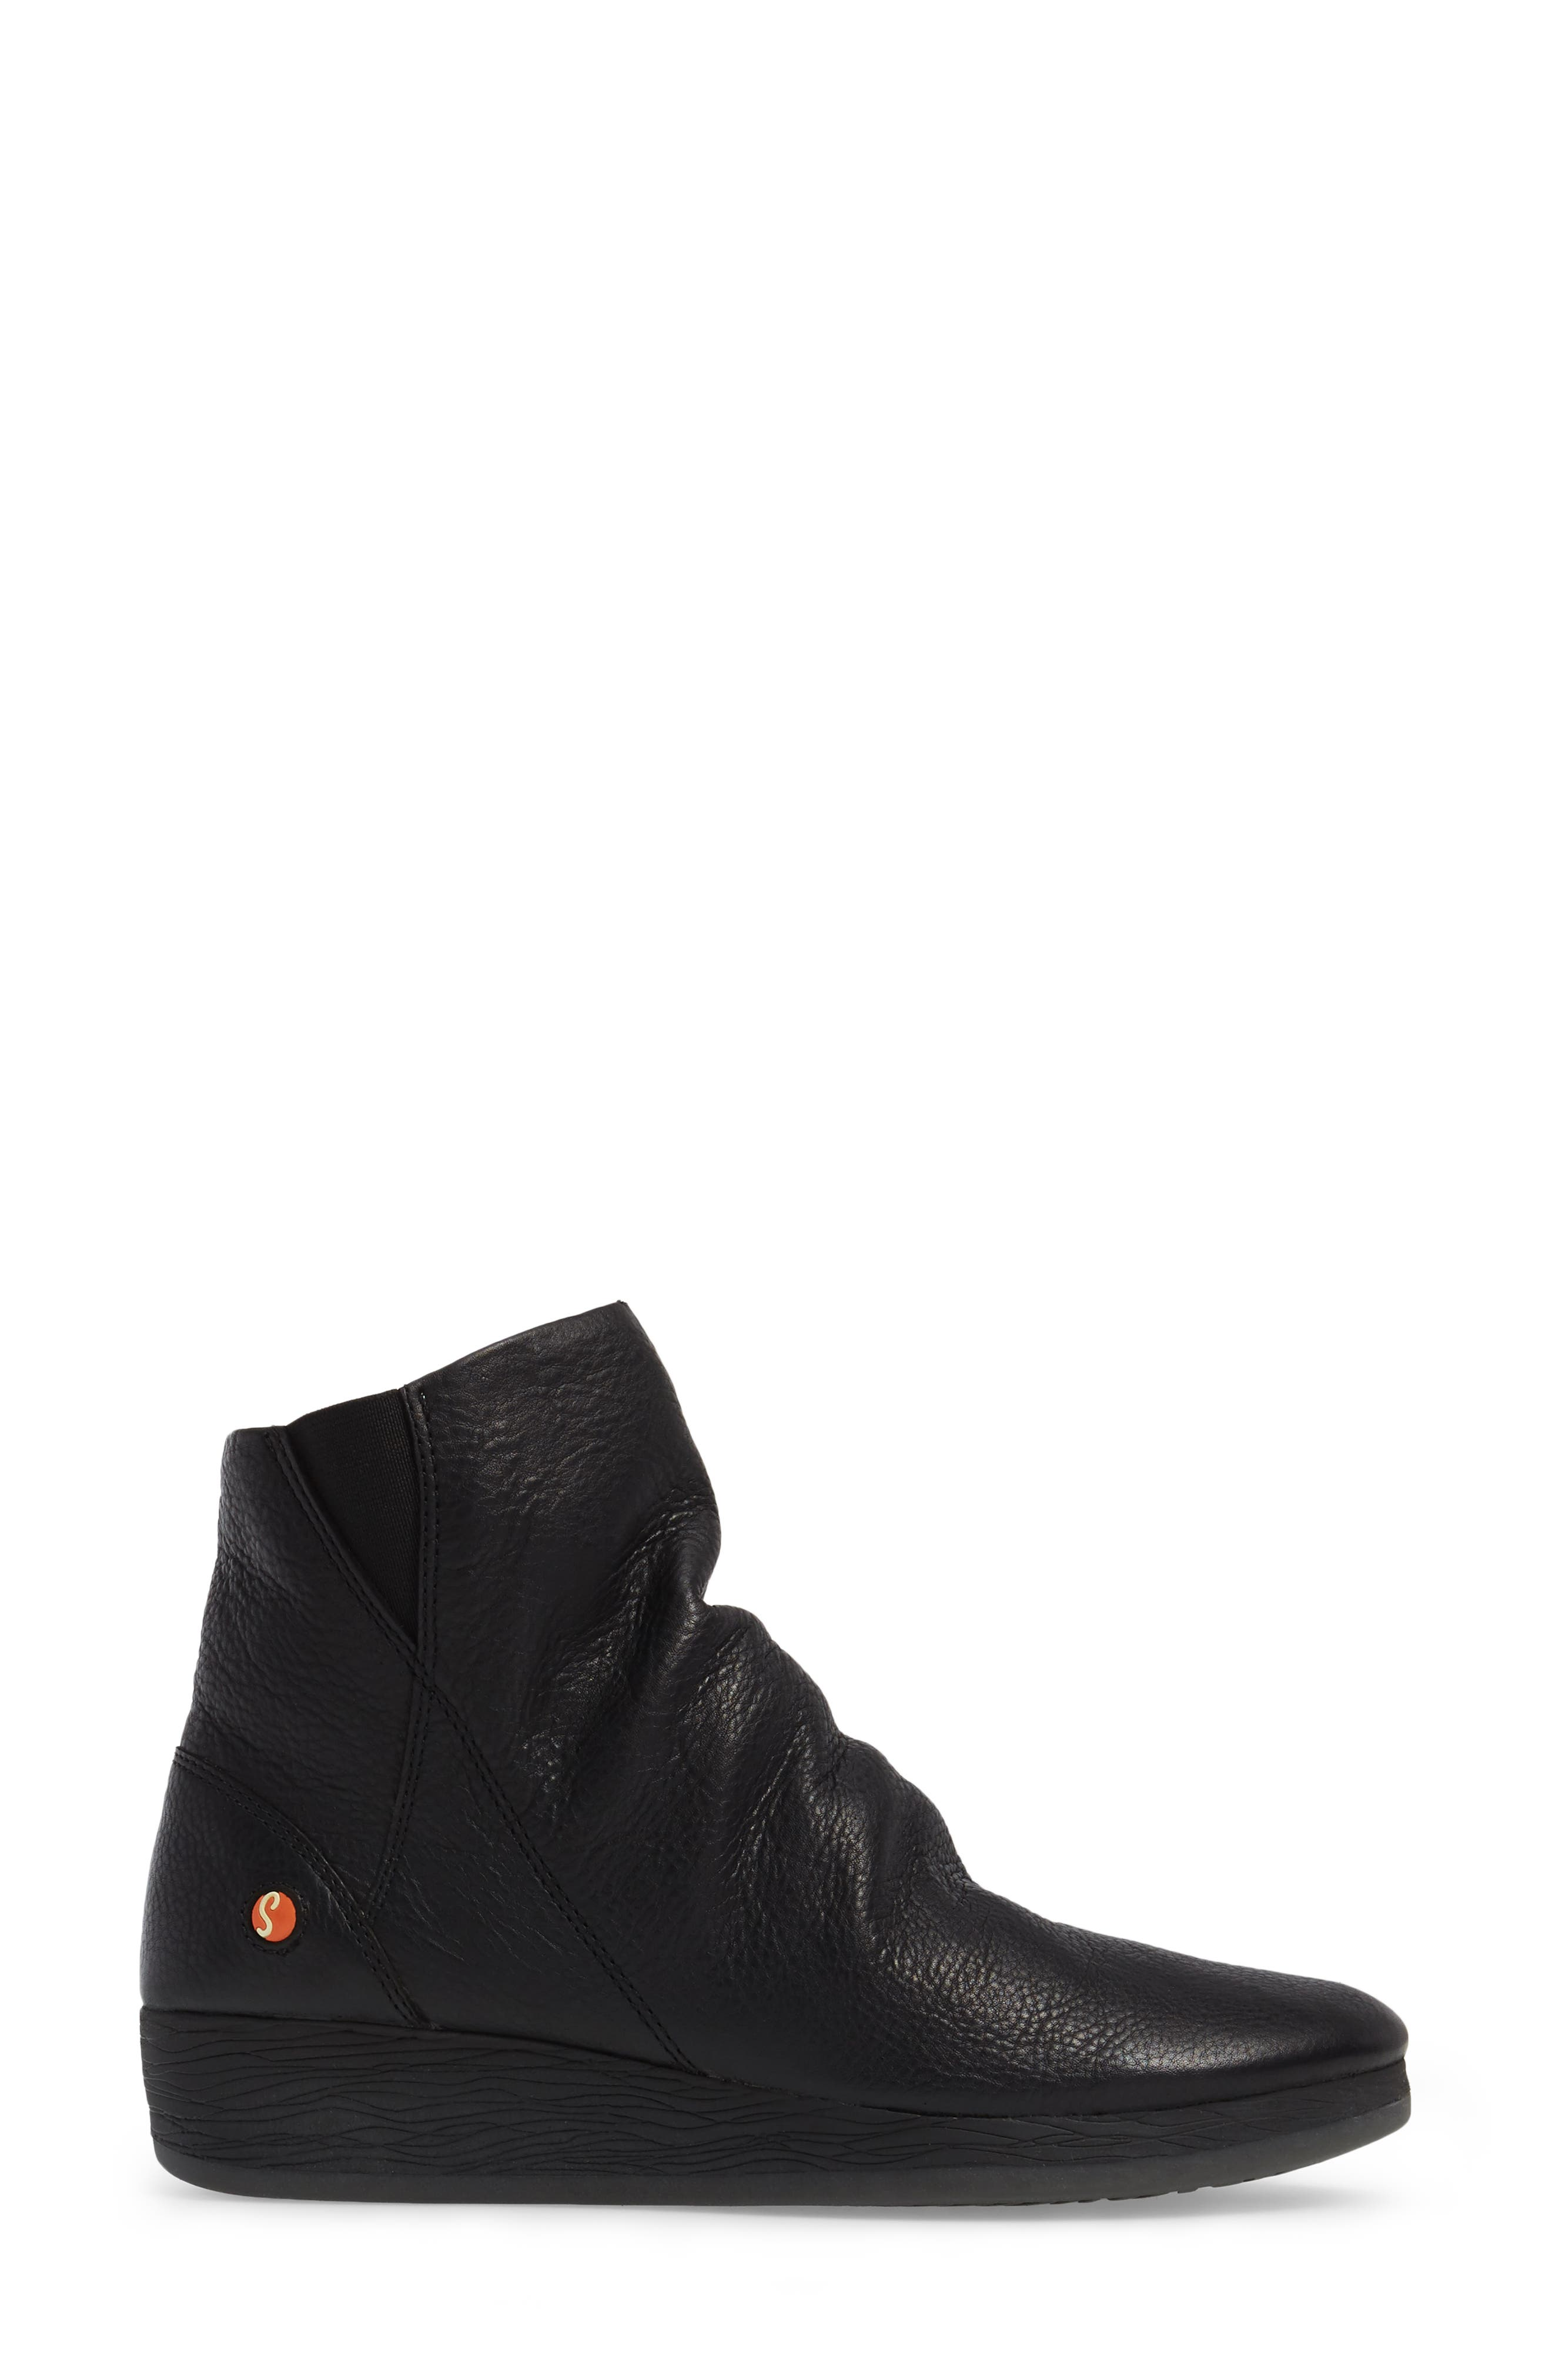 Ayo Low Wedge Bootie,                             Alternate thumbnail 3, color,                             001